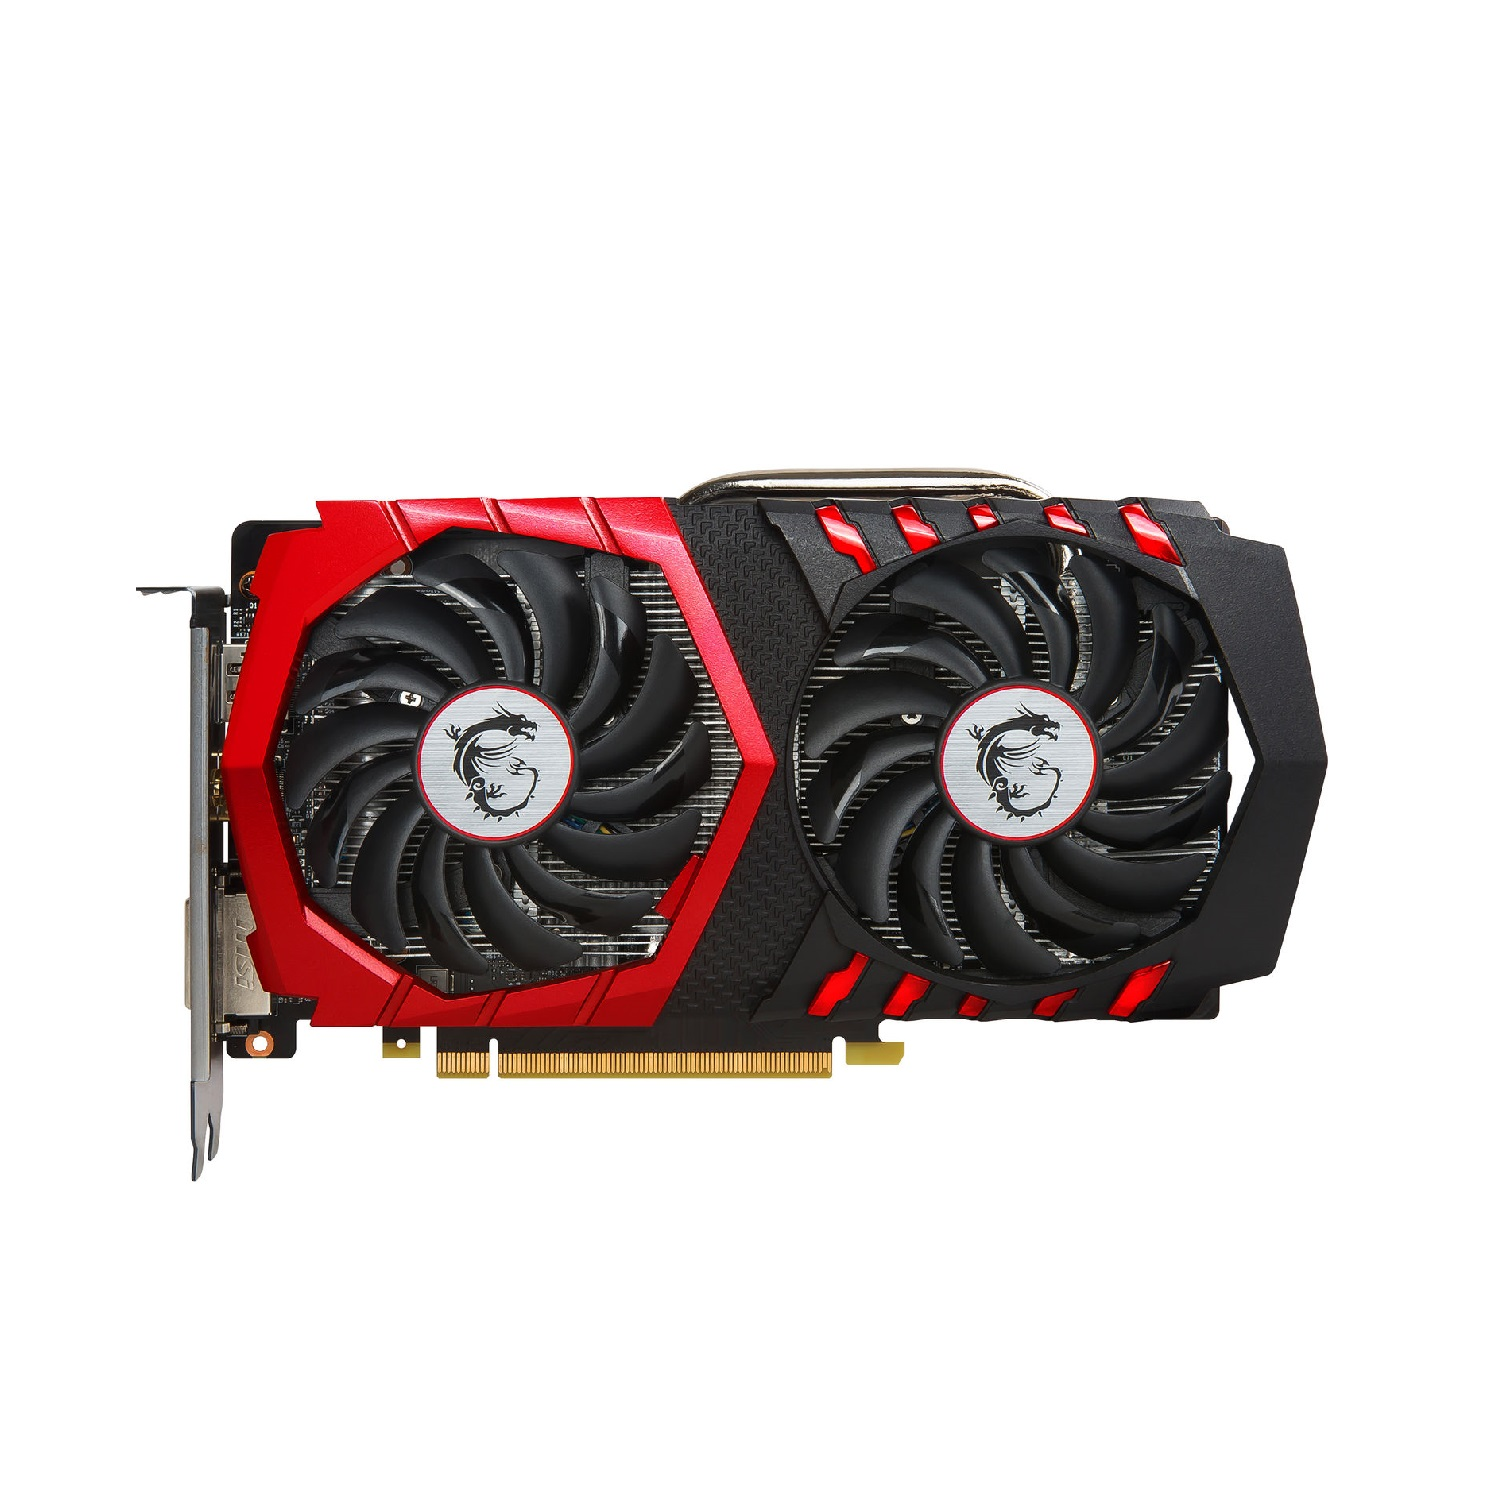 MSI GTX 1050 Gaming Graphics Card